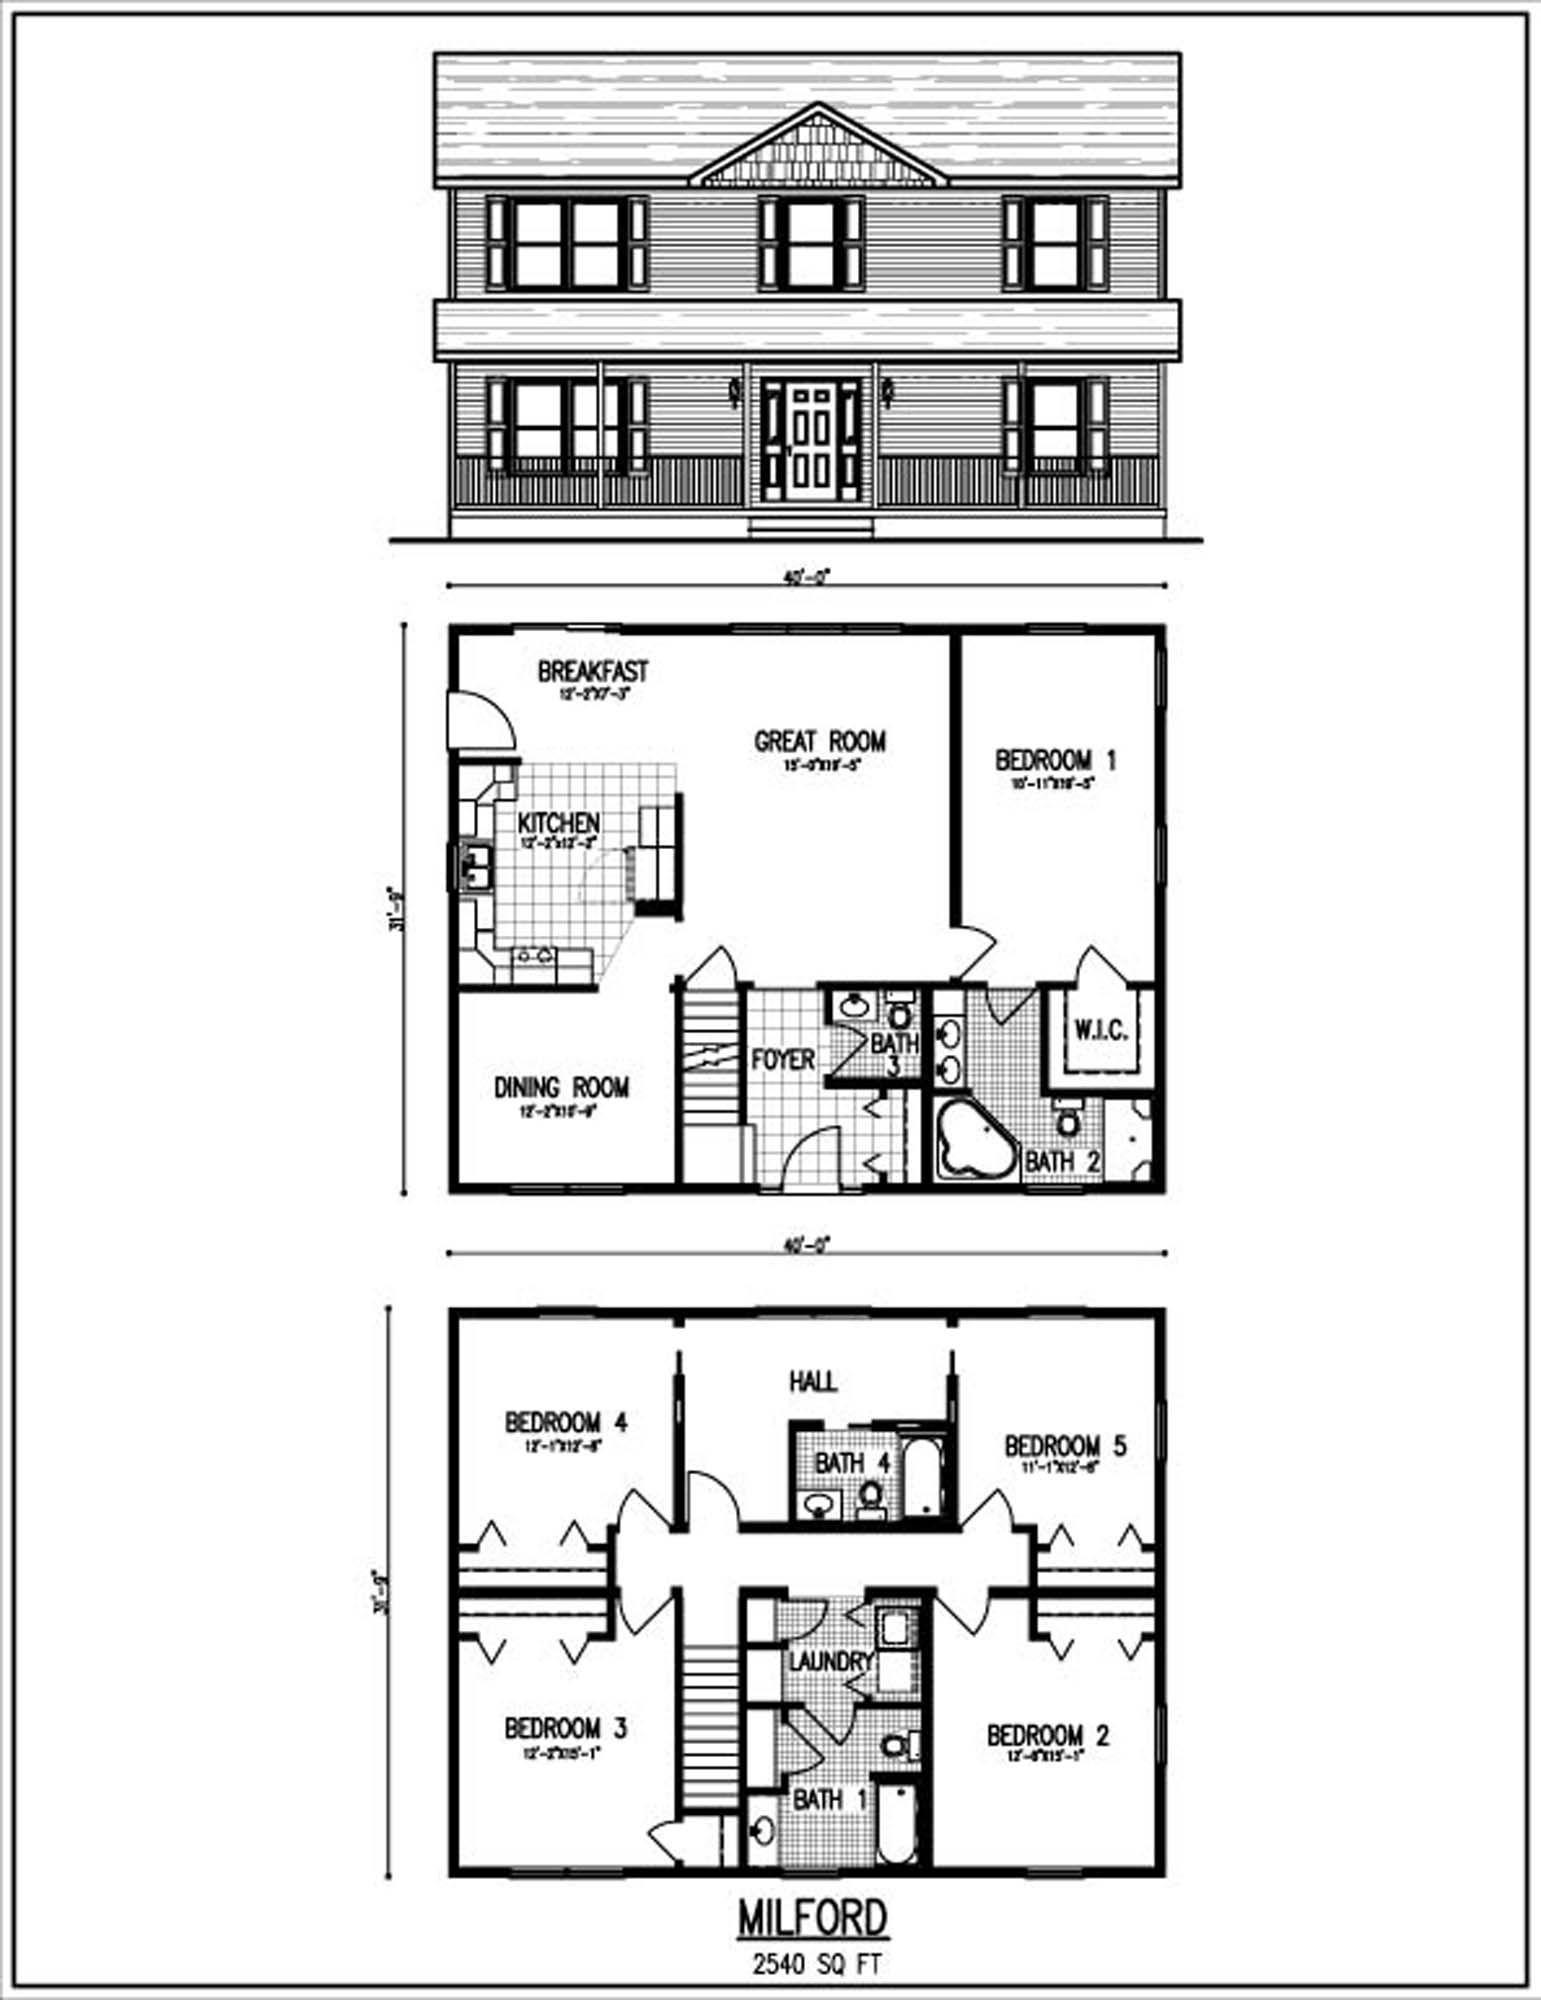 Beautiful 2 story house plans with upper level floor plan for 2 story house plans